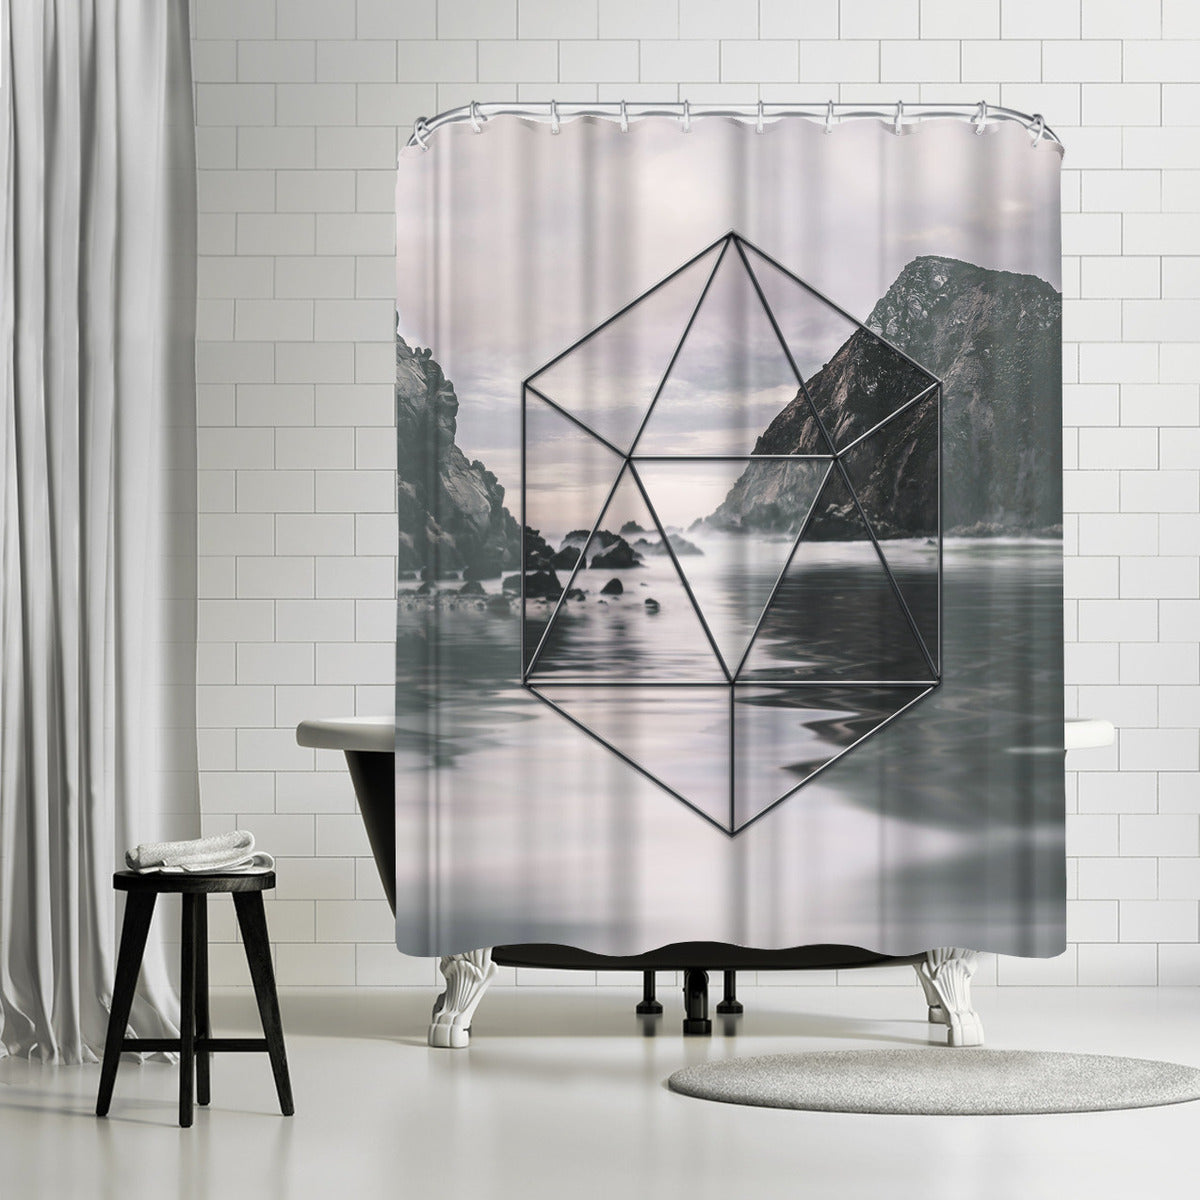 Landscape Surreal Geometry 2 by Lebens Art Shower Curtain -  - Americanflat